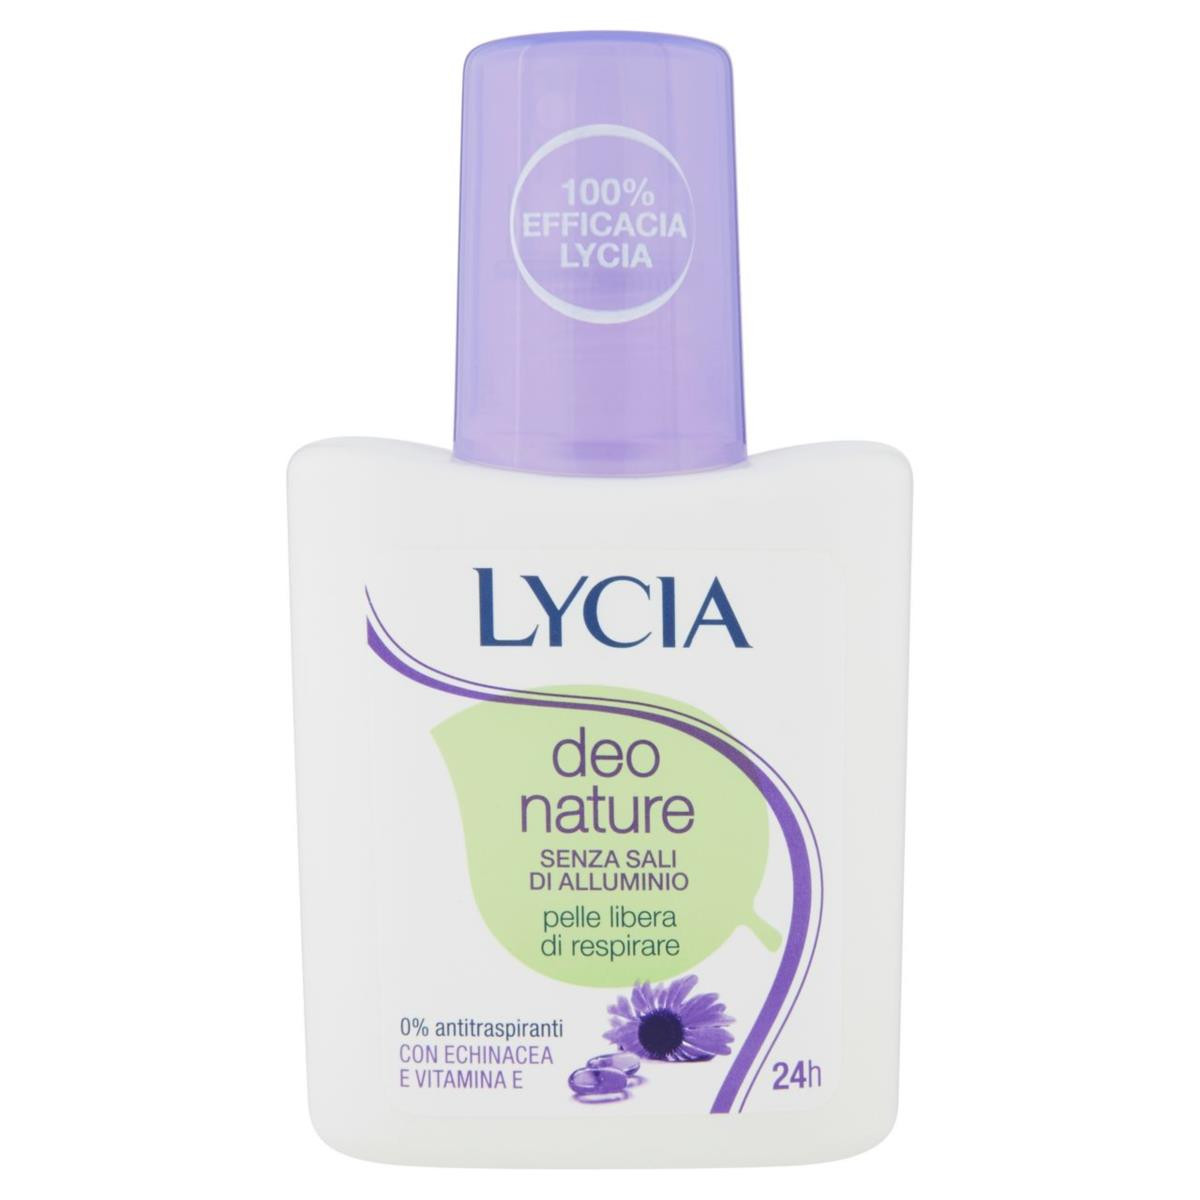 Lycia Deo Nature Vapo 75ml